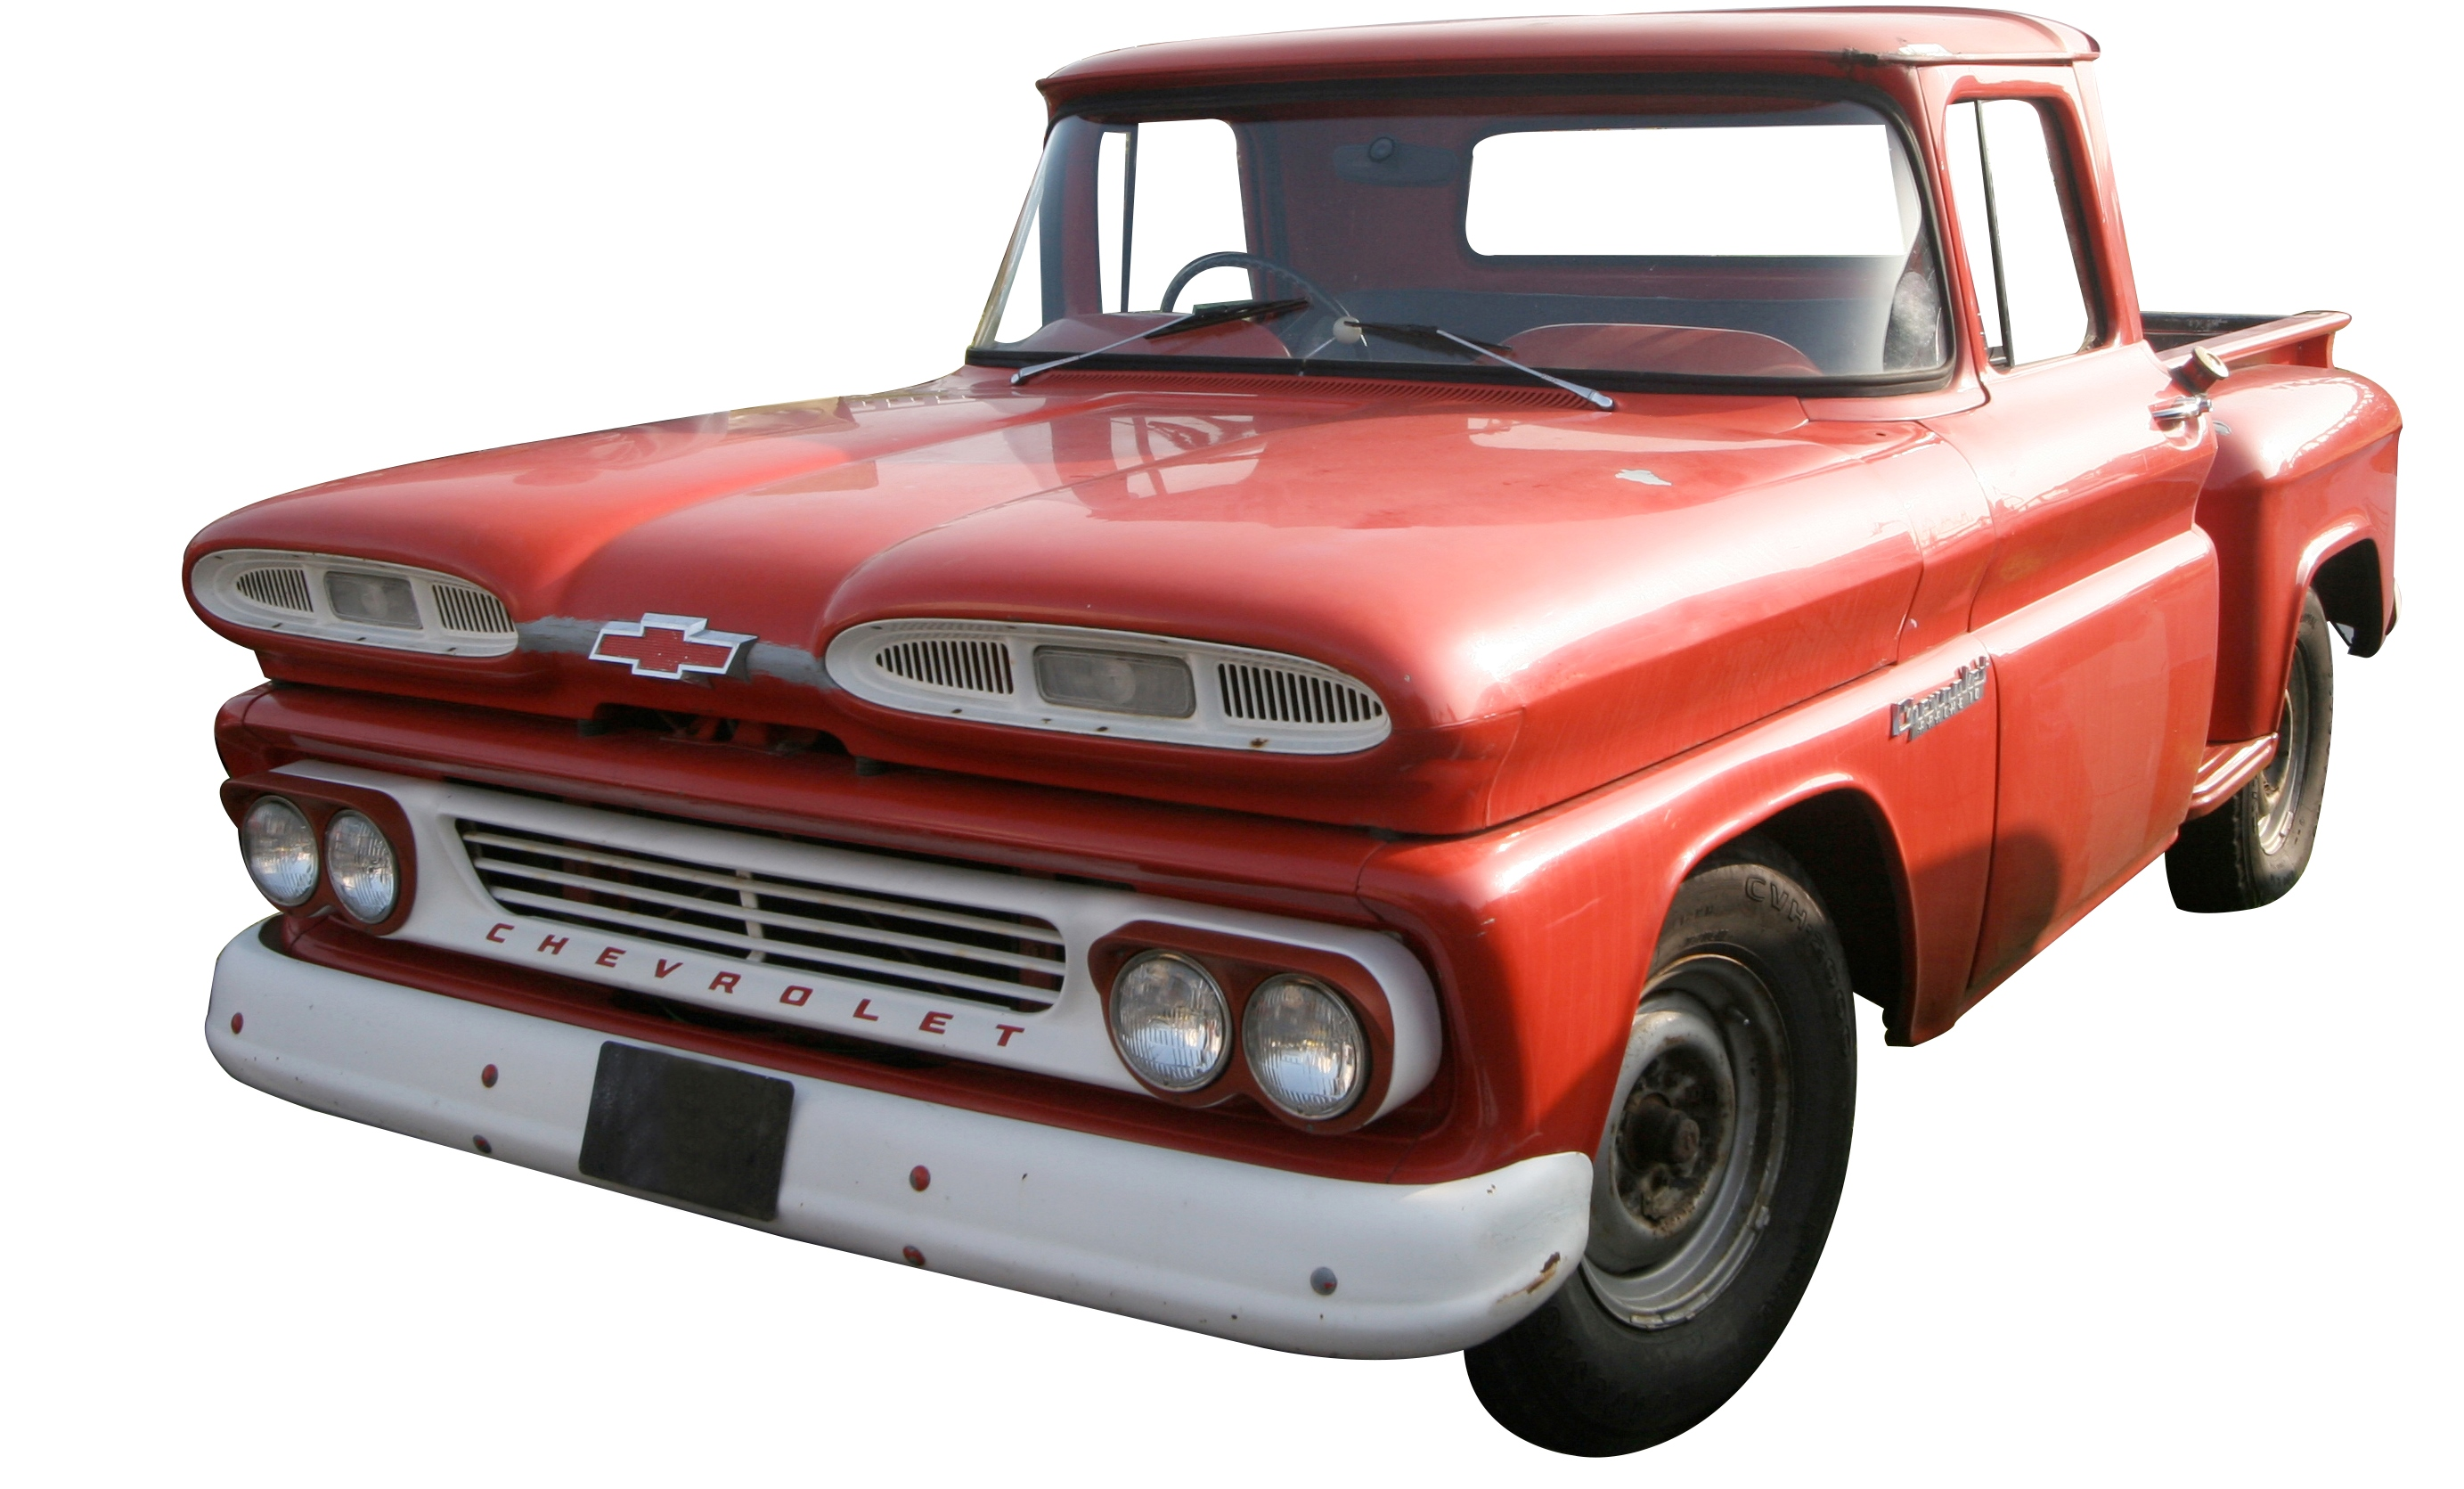 Ride Guides A Quick Guide To Identifying 1960 66 Chevrolet Pickups Old Chevy Truck Tailgates Onallcylinders